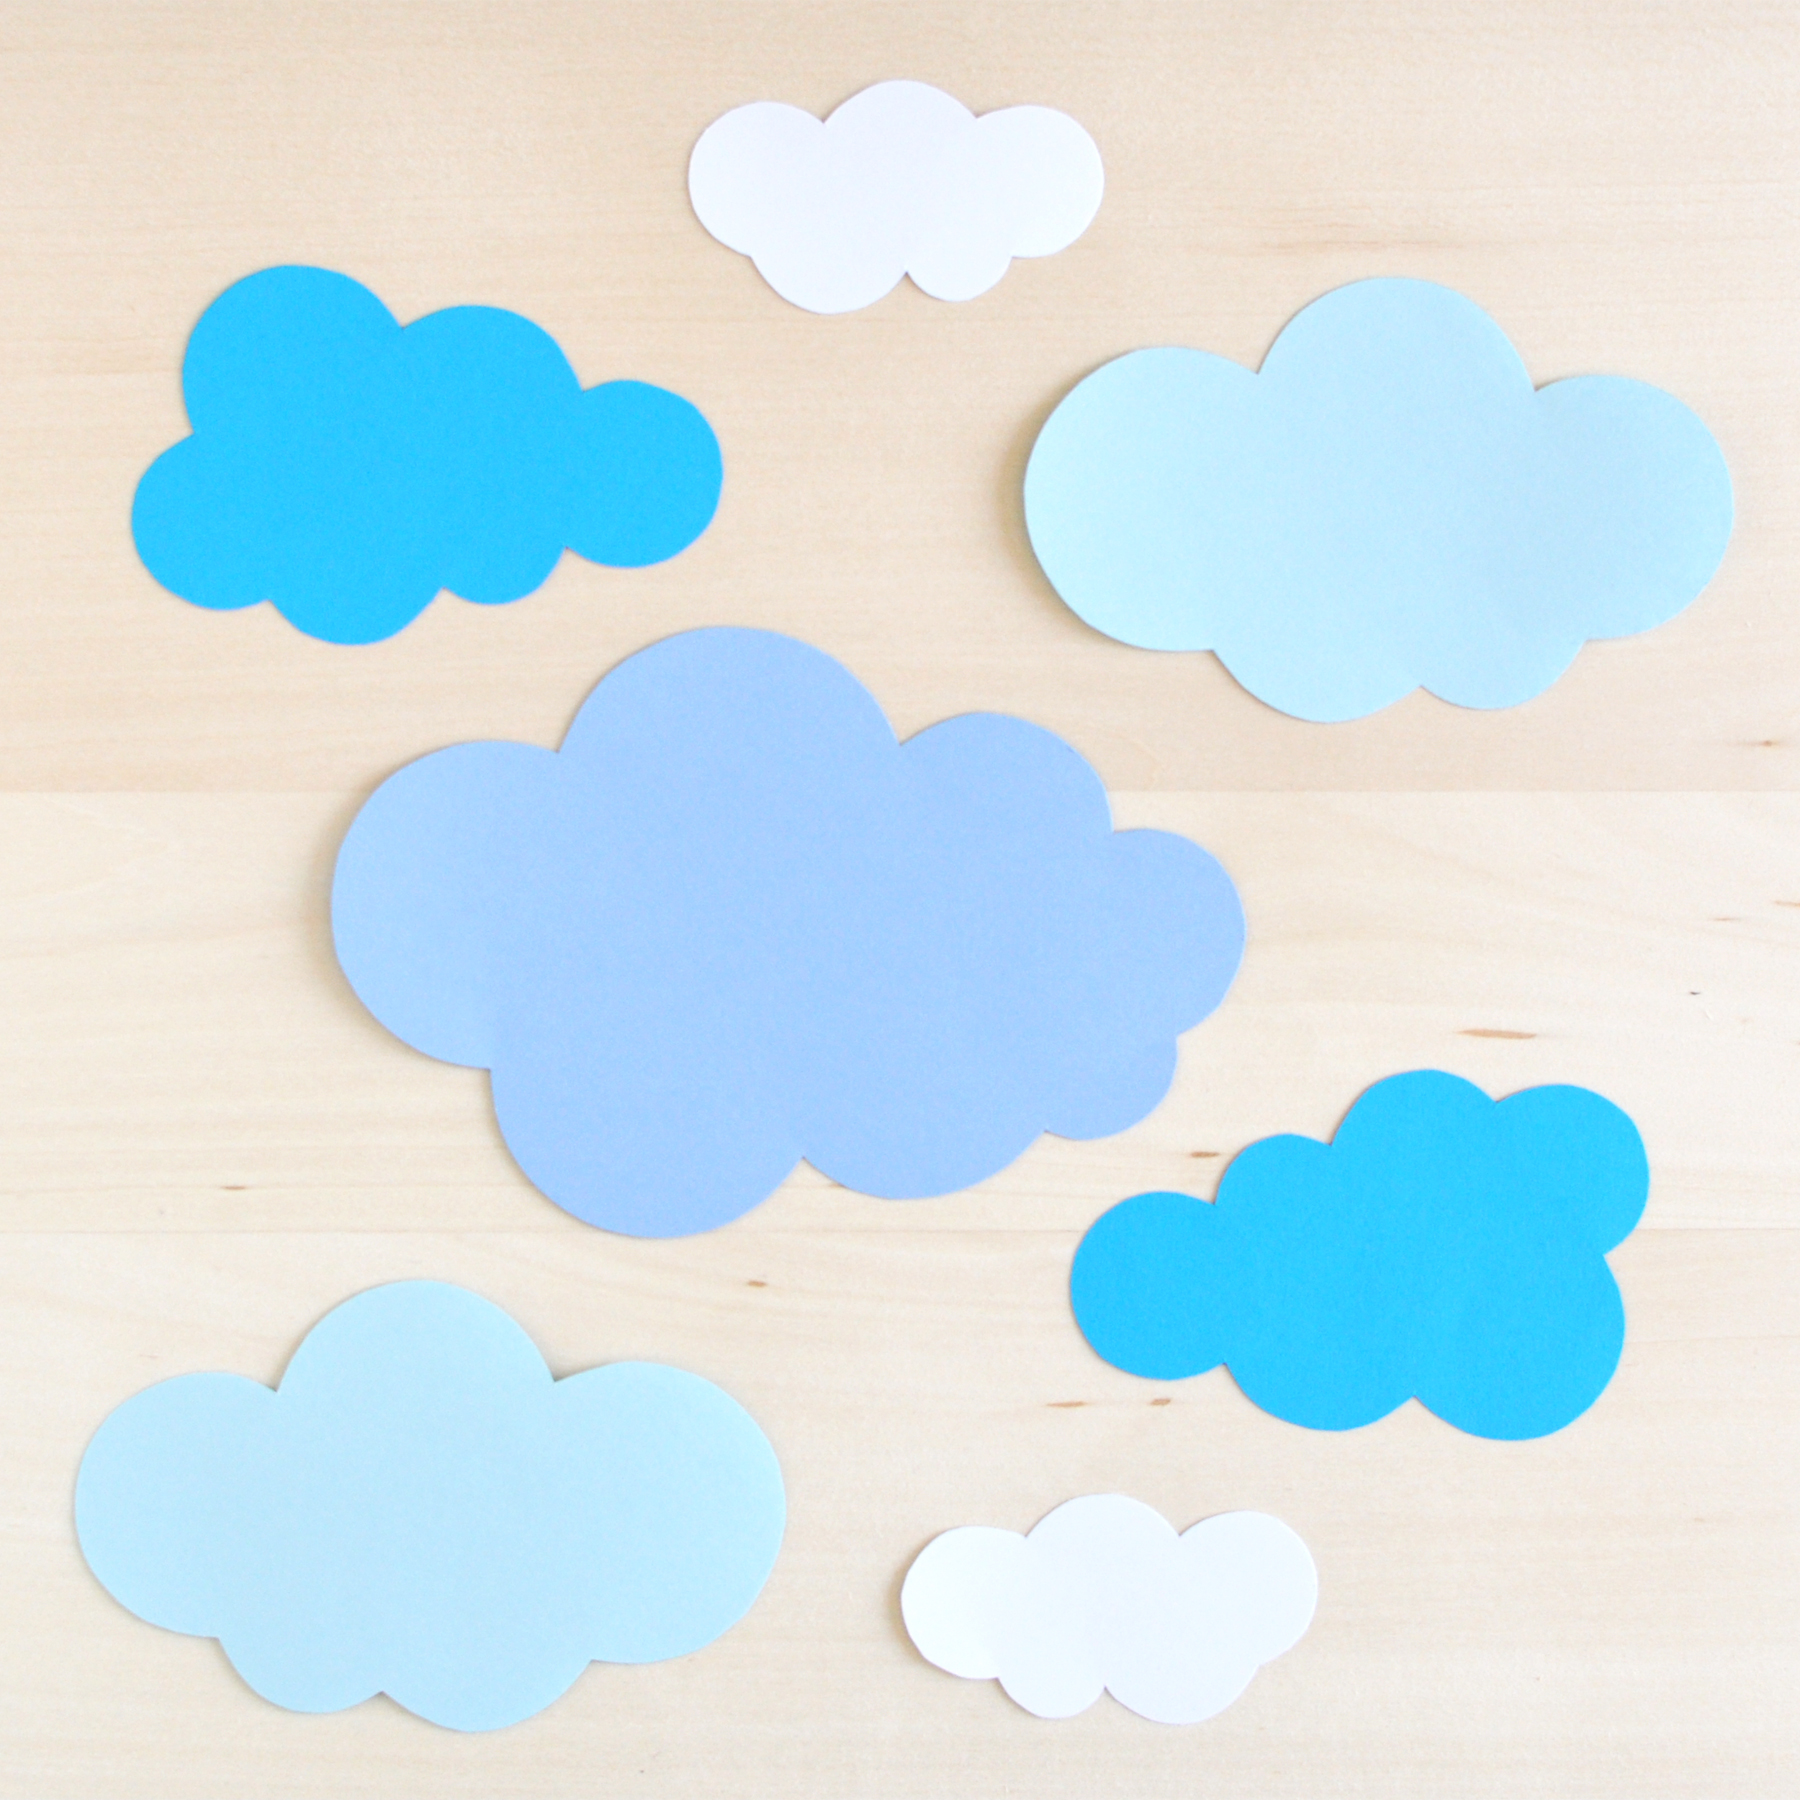 Make-Your-Own-Mini-Cloud-Journal---Image4.jpg